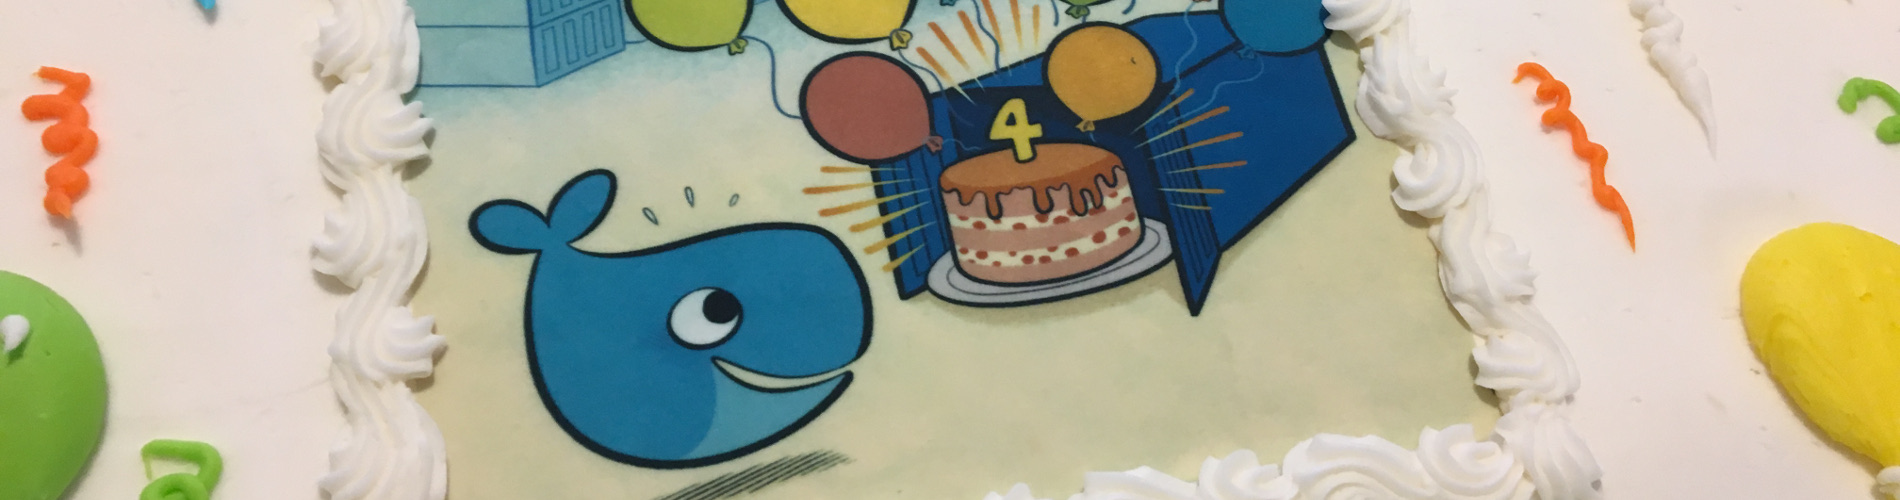 Docker's Birthday: The Fourth Kind feature image